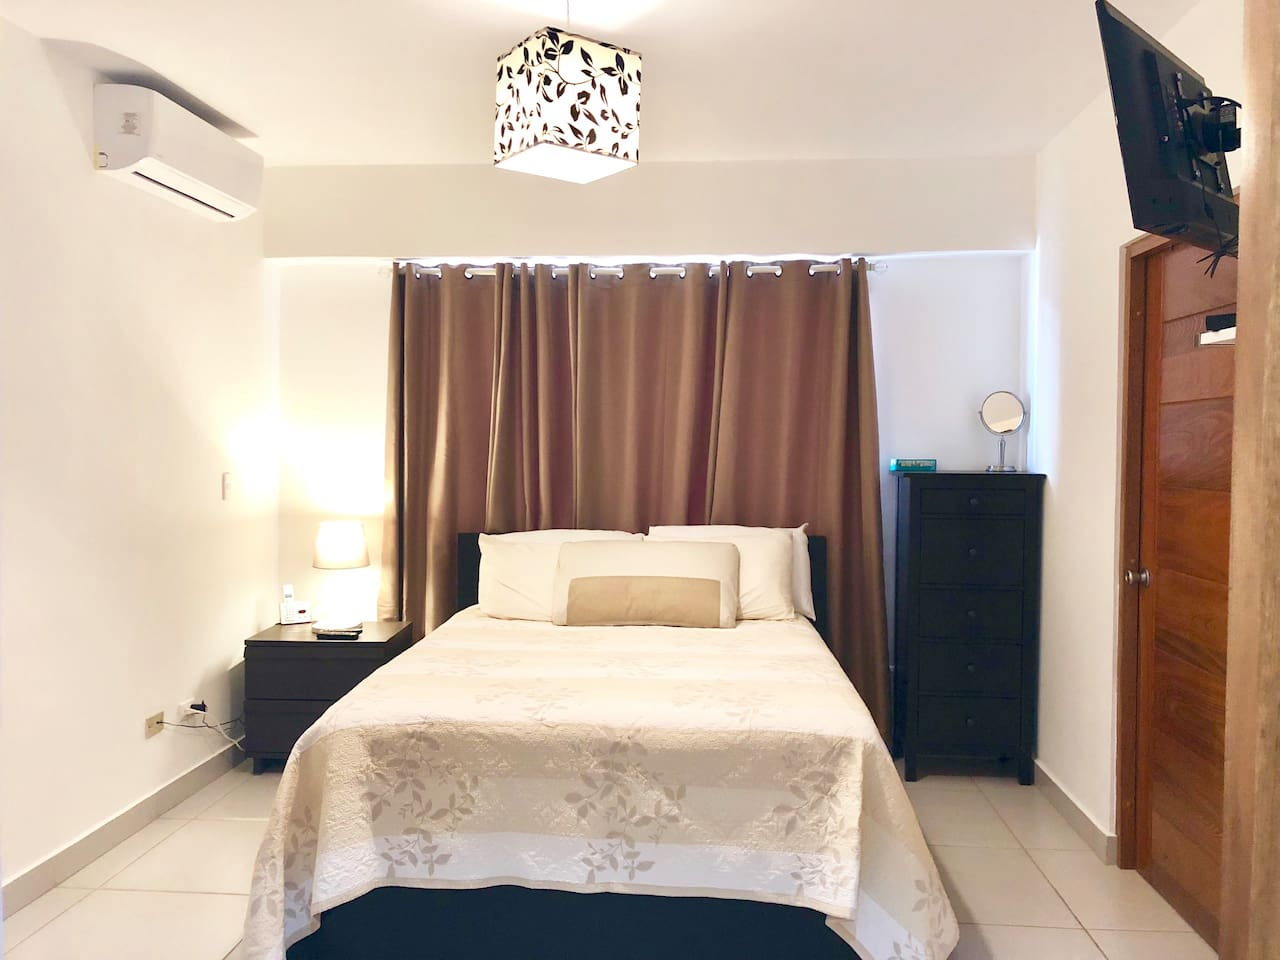 Comfortable bedroom with A/C + Smart TV with 150+ channels + PHONE with local calling service (totally FREE) + Smart Night lamp!